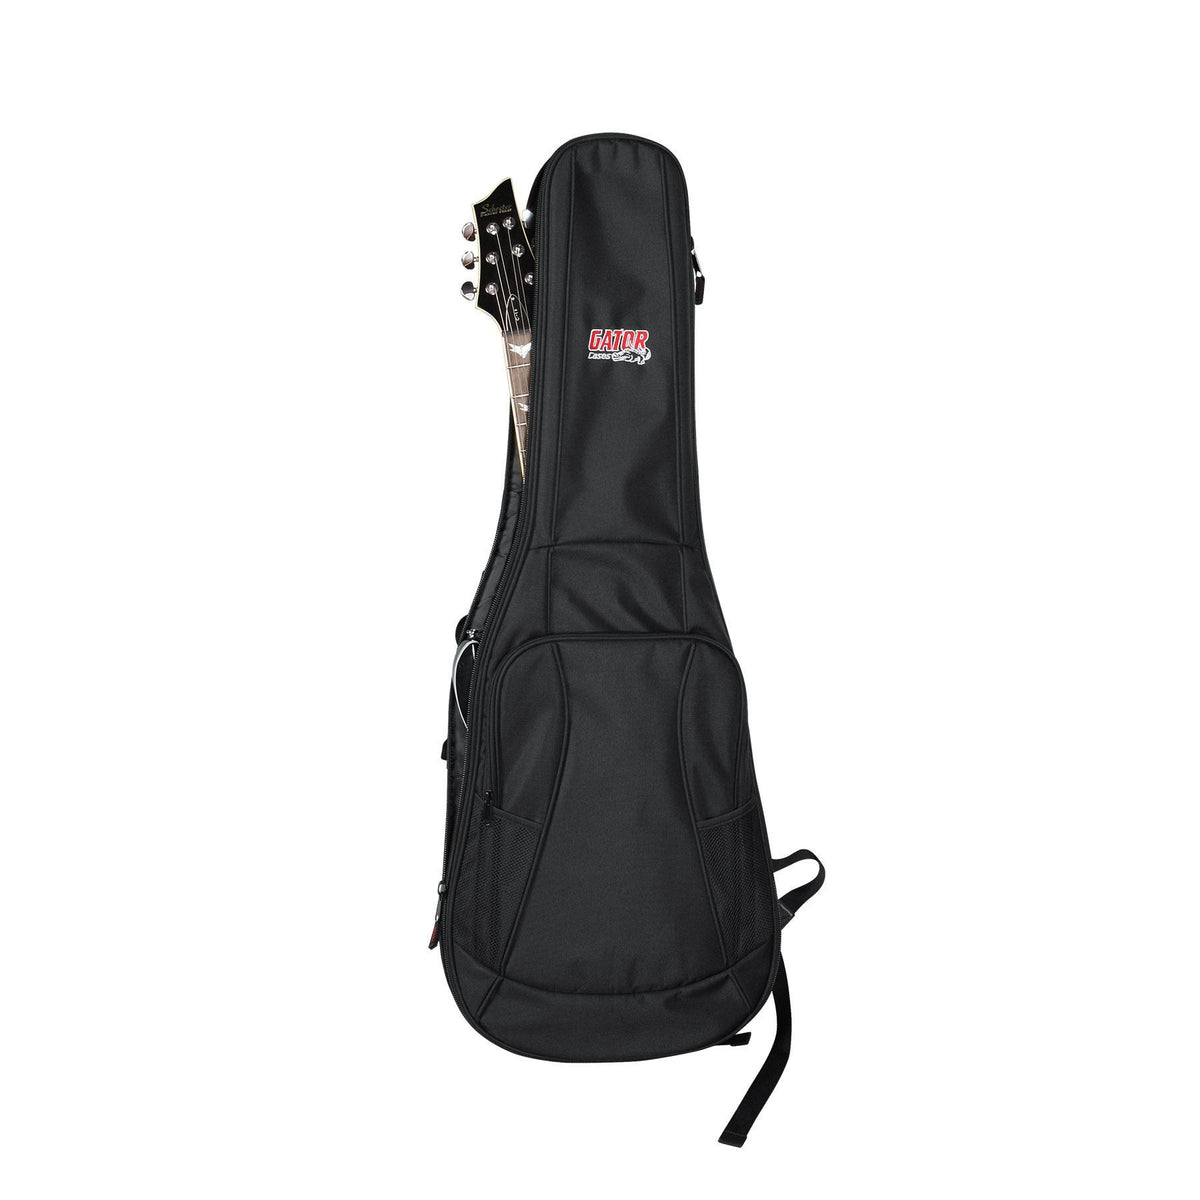 Gator Electric Guitar Backpack Gig Bag for Ibanez GRX20Z, GRX70QA Guitars